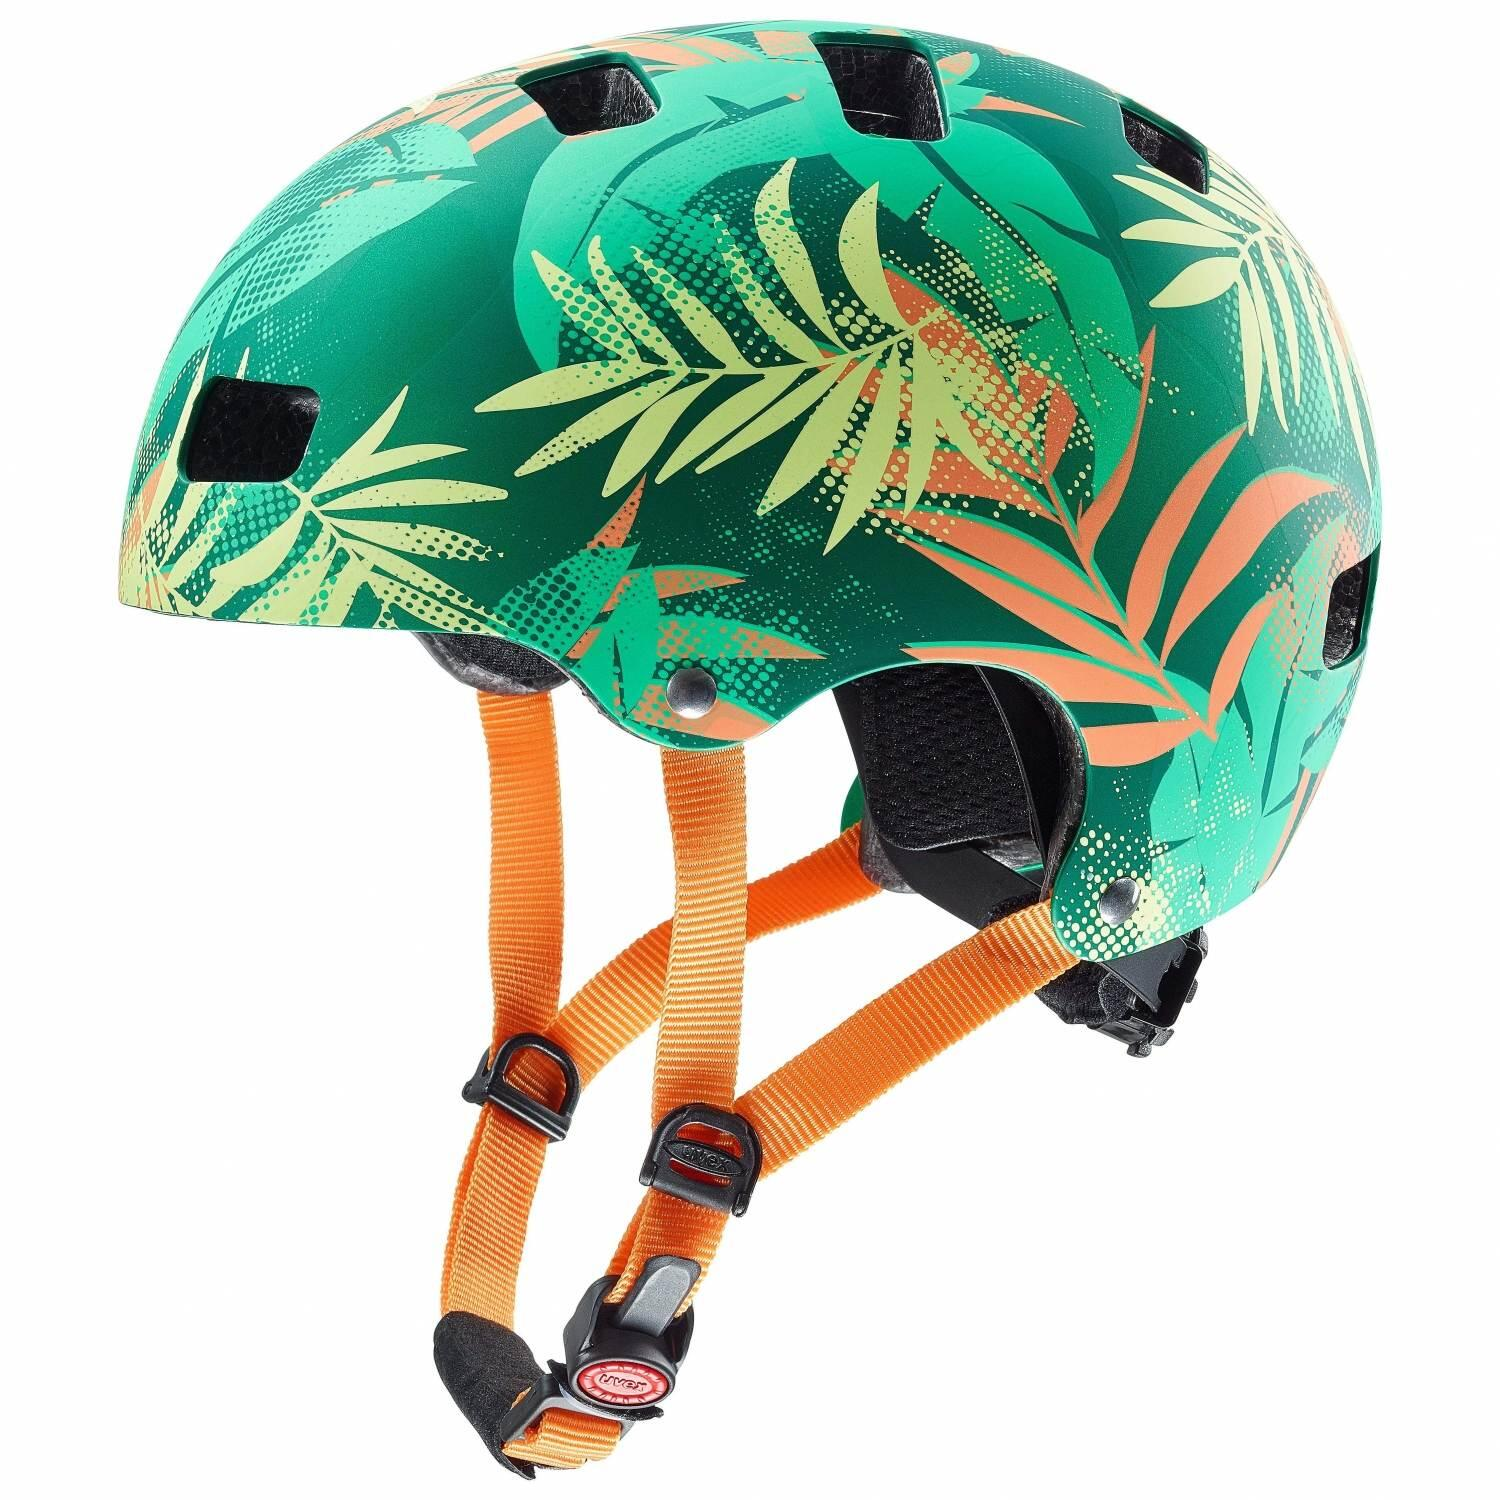 uvex-kid-3-cc-kinder-fahrradhelm-gr-ouml-szlig-e-55-58-cm-02-green-orange-